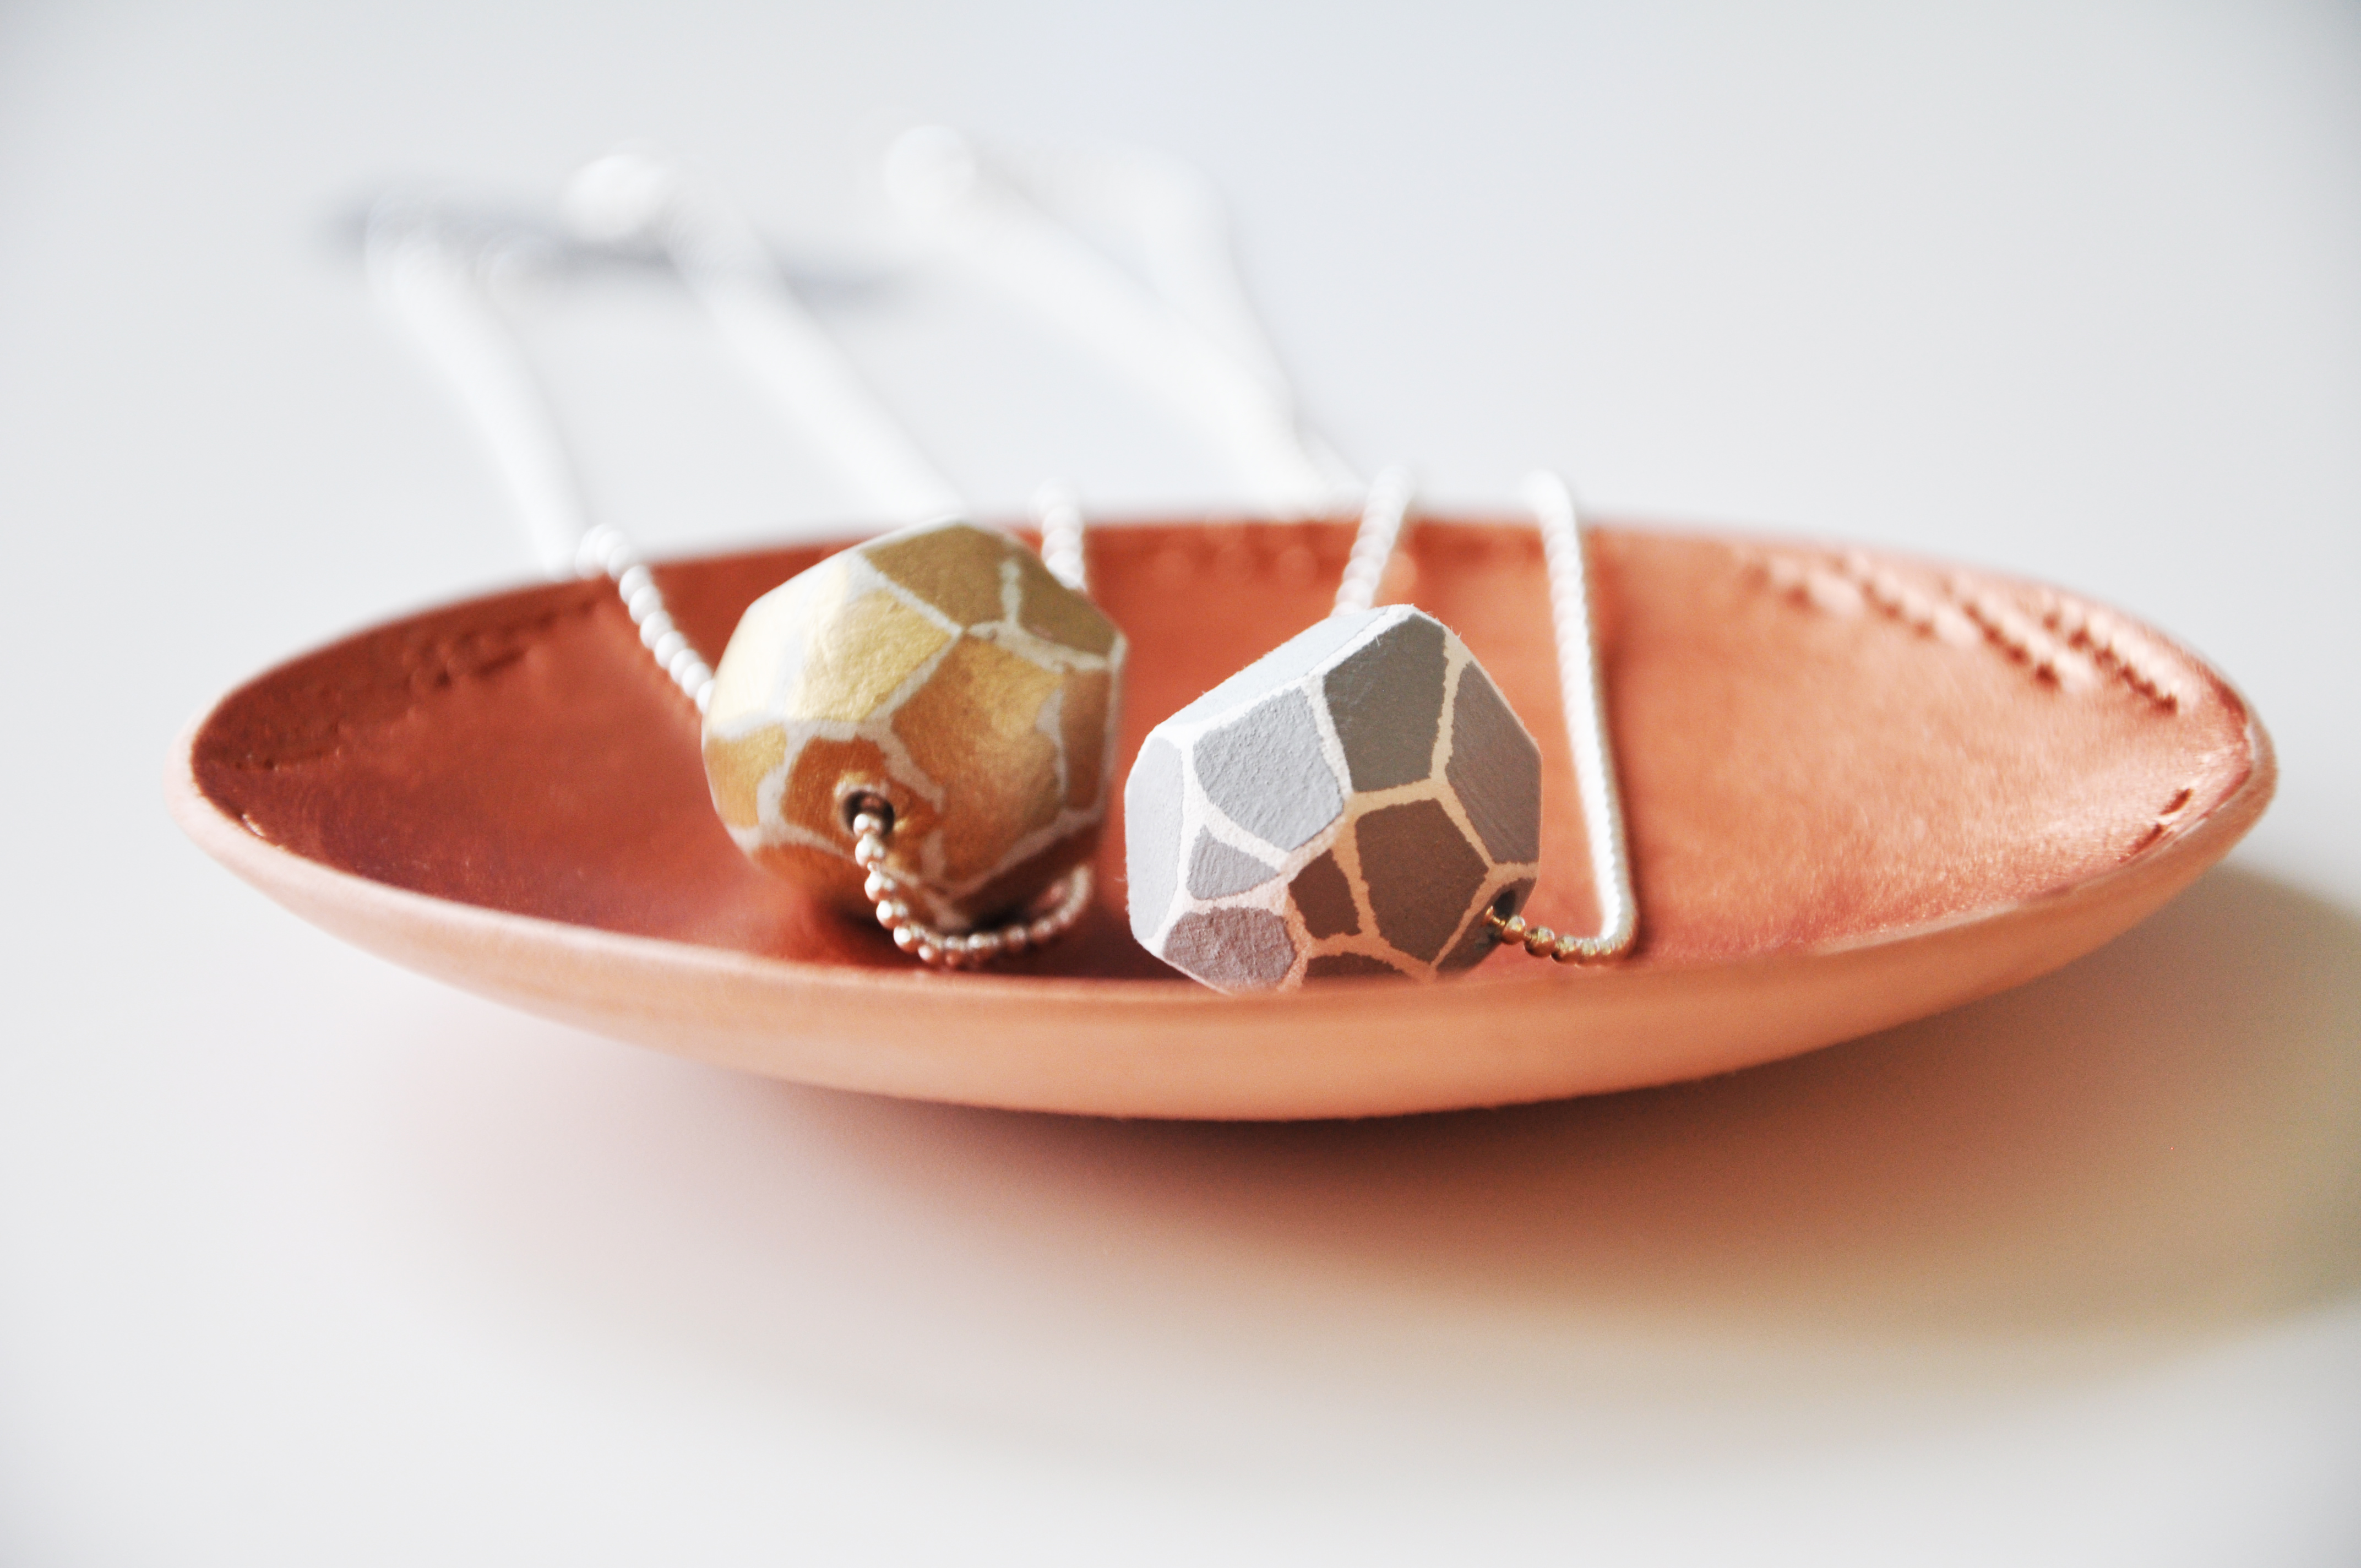 Terracotta jewellery dish and GEO bead necklaces